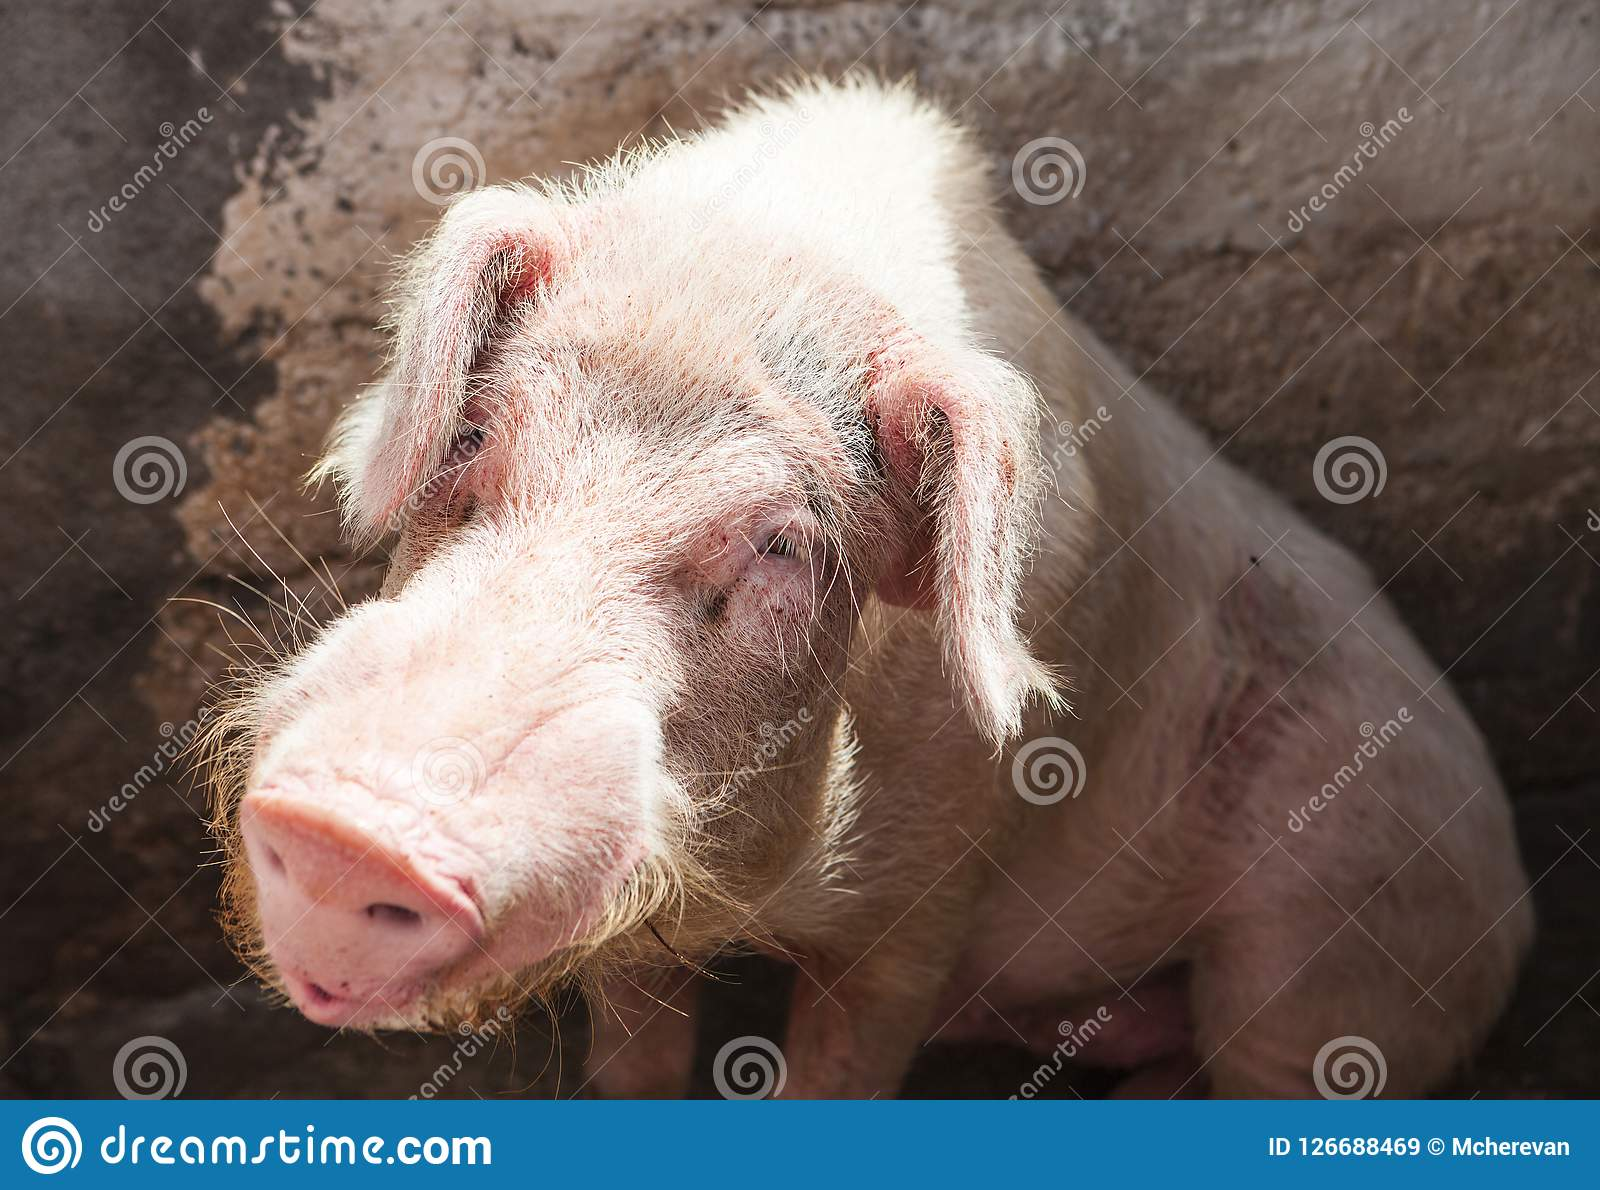 Boar  Large Pig Sitting In A Pen On The Farm  Stock Image